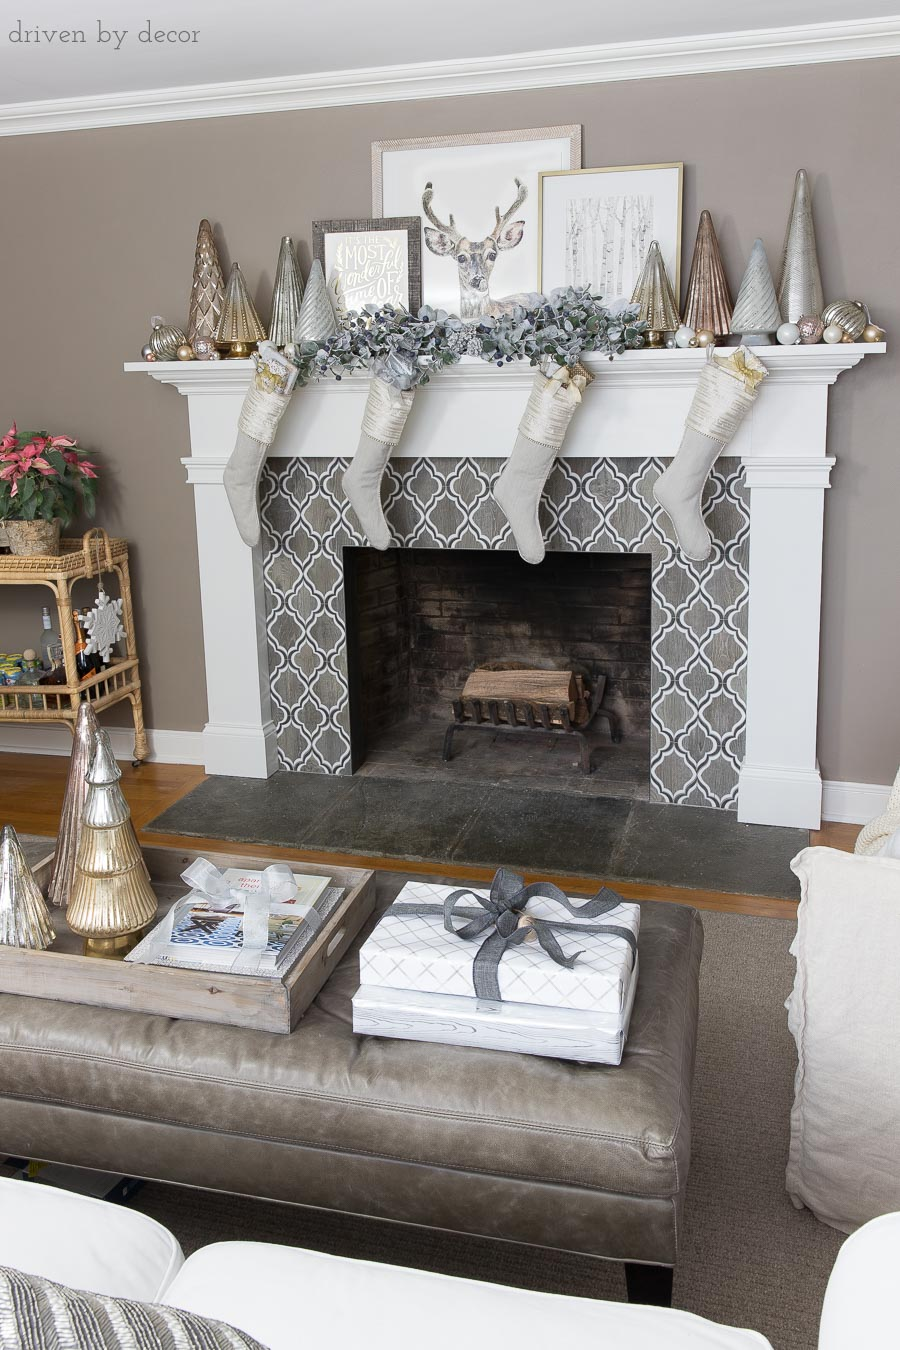 Our fireplace mantel decorated for the holidays with flocked greenery, metallic Christmas trees, layered art, and linen stockings